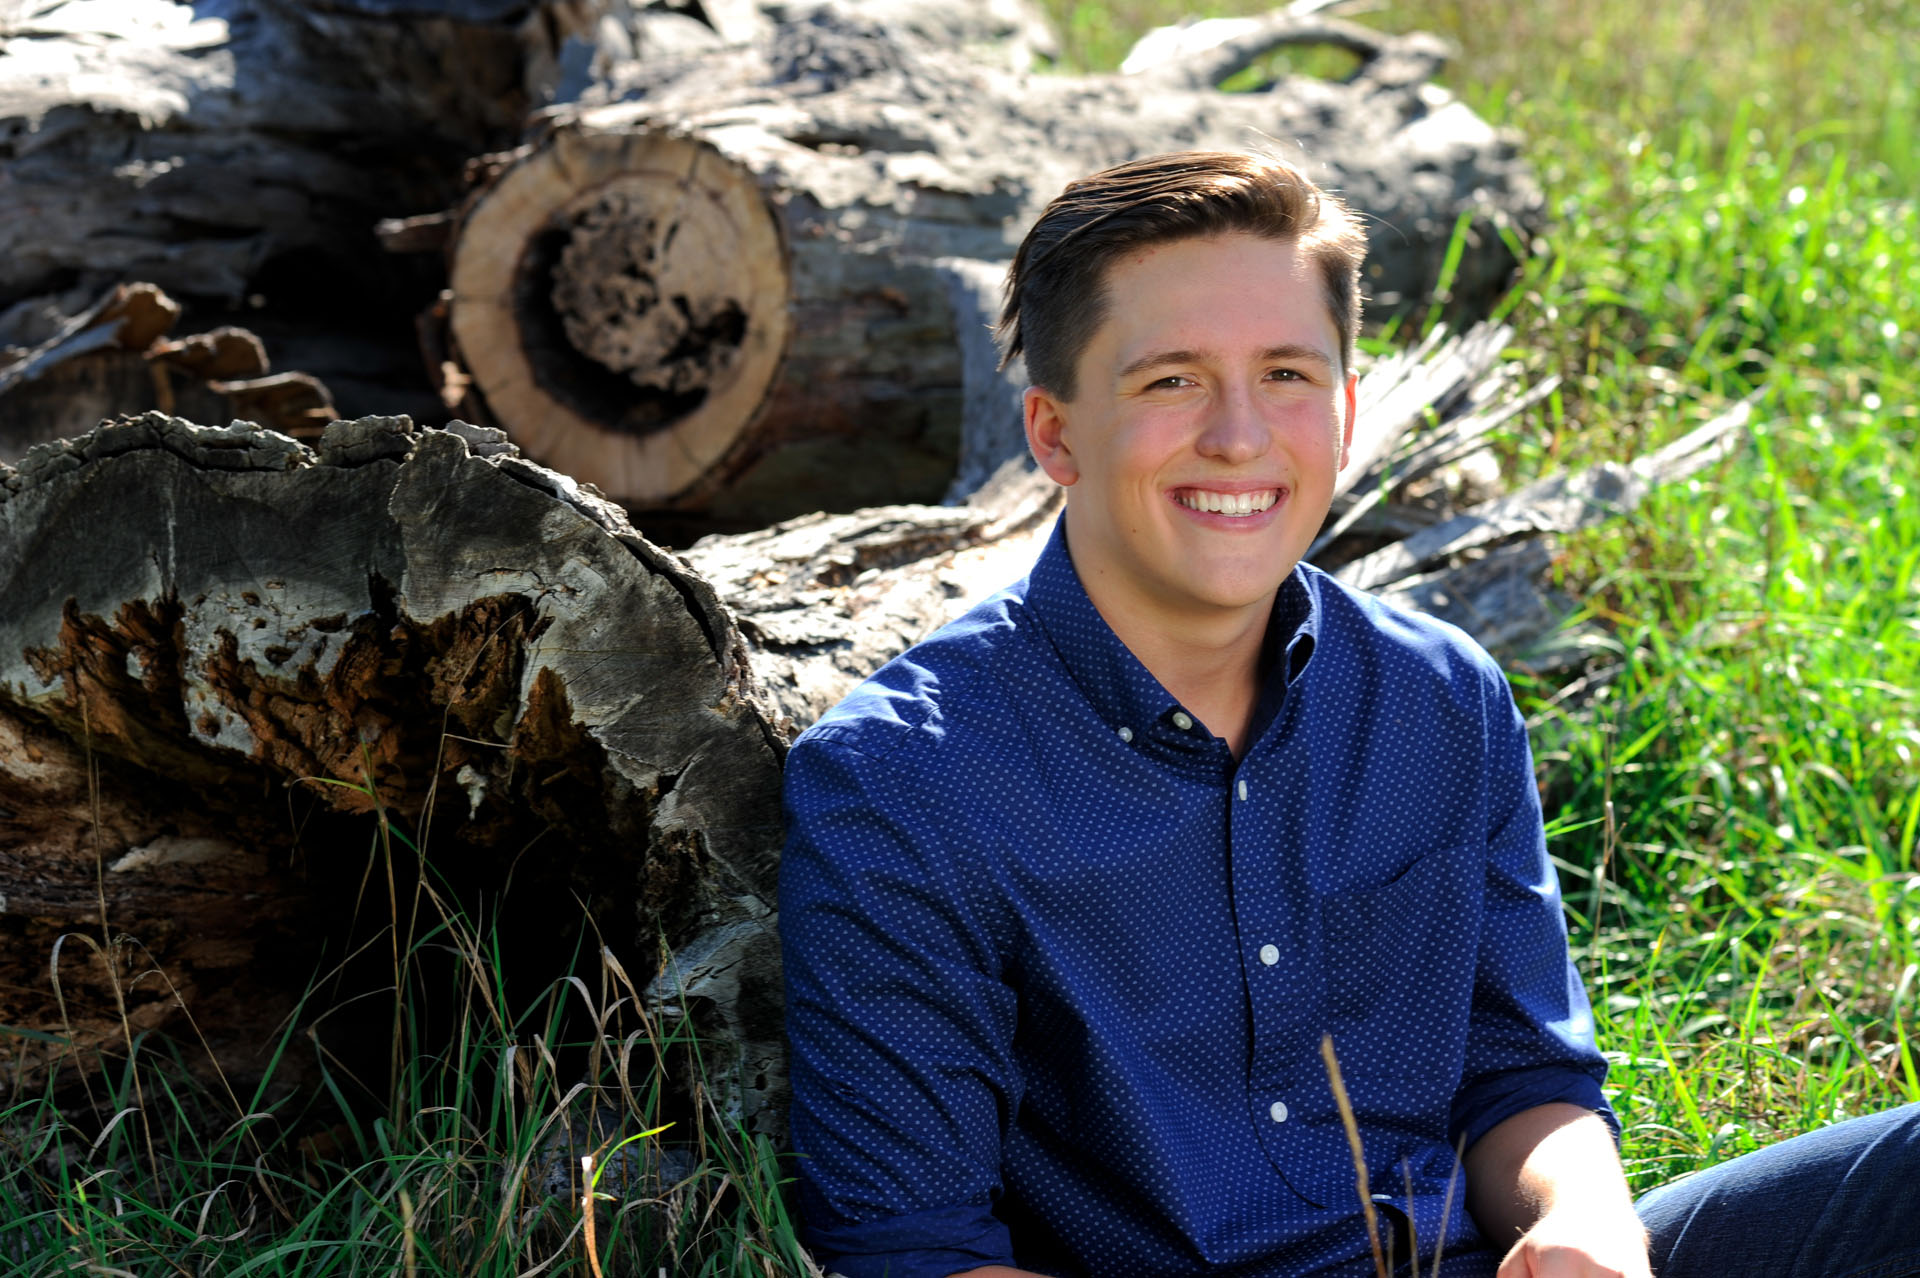 Troy , Michigan senior photographer shows a high school senior standing out in nature during his senior shoot.